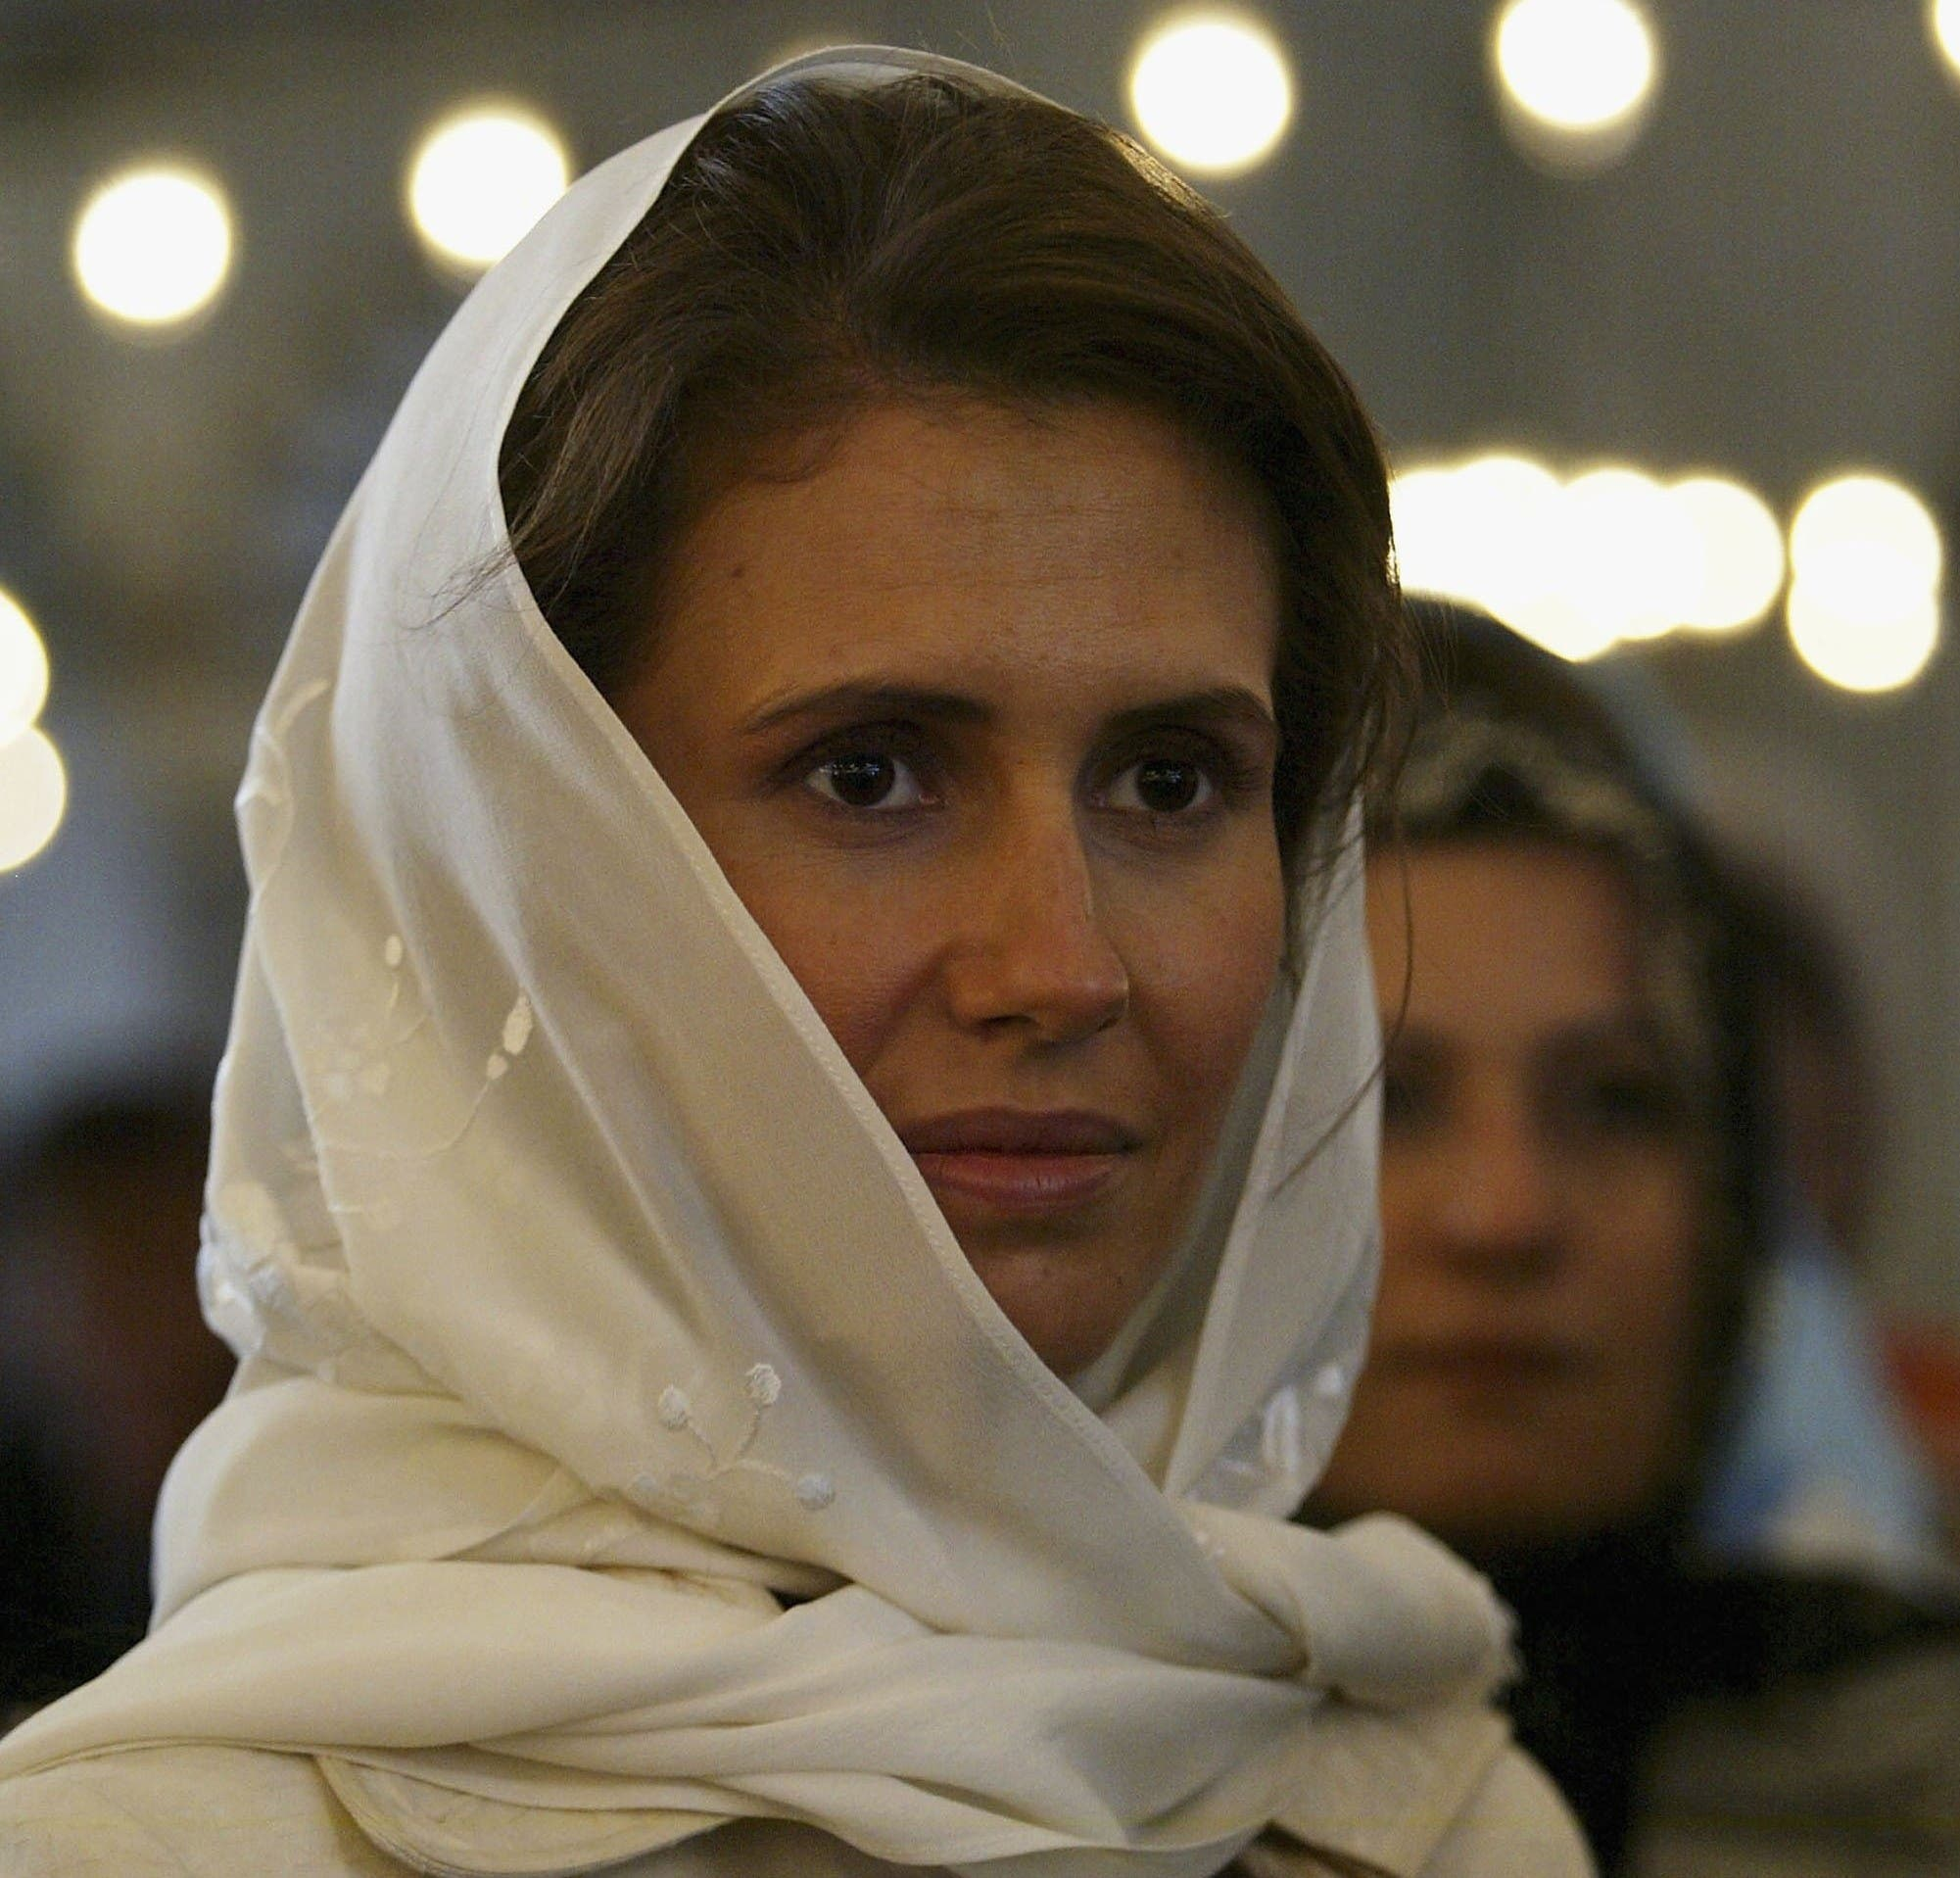 In spite of her hefty circumnavigation of EU sanctions, Syrian first lady, Asma Al-Assad, won't be seeing the inside of Harrod's for a long time.